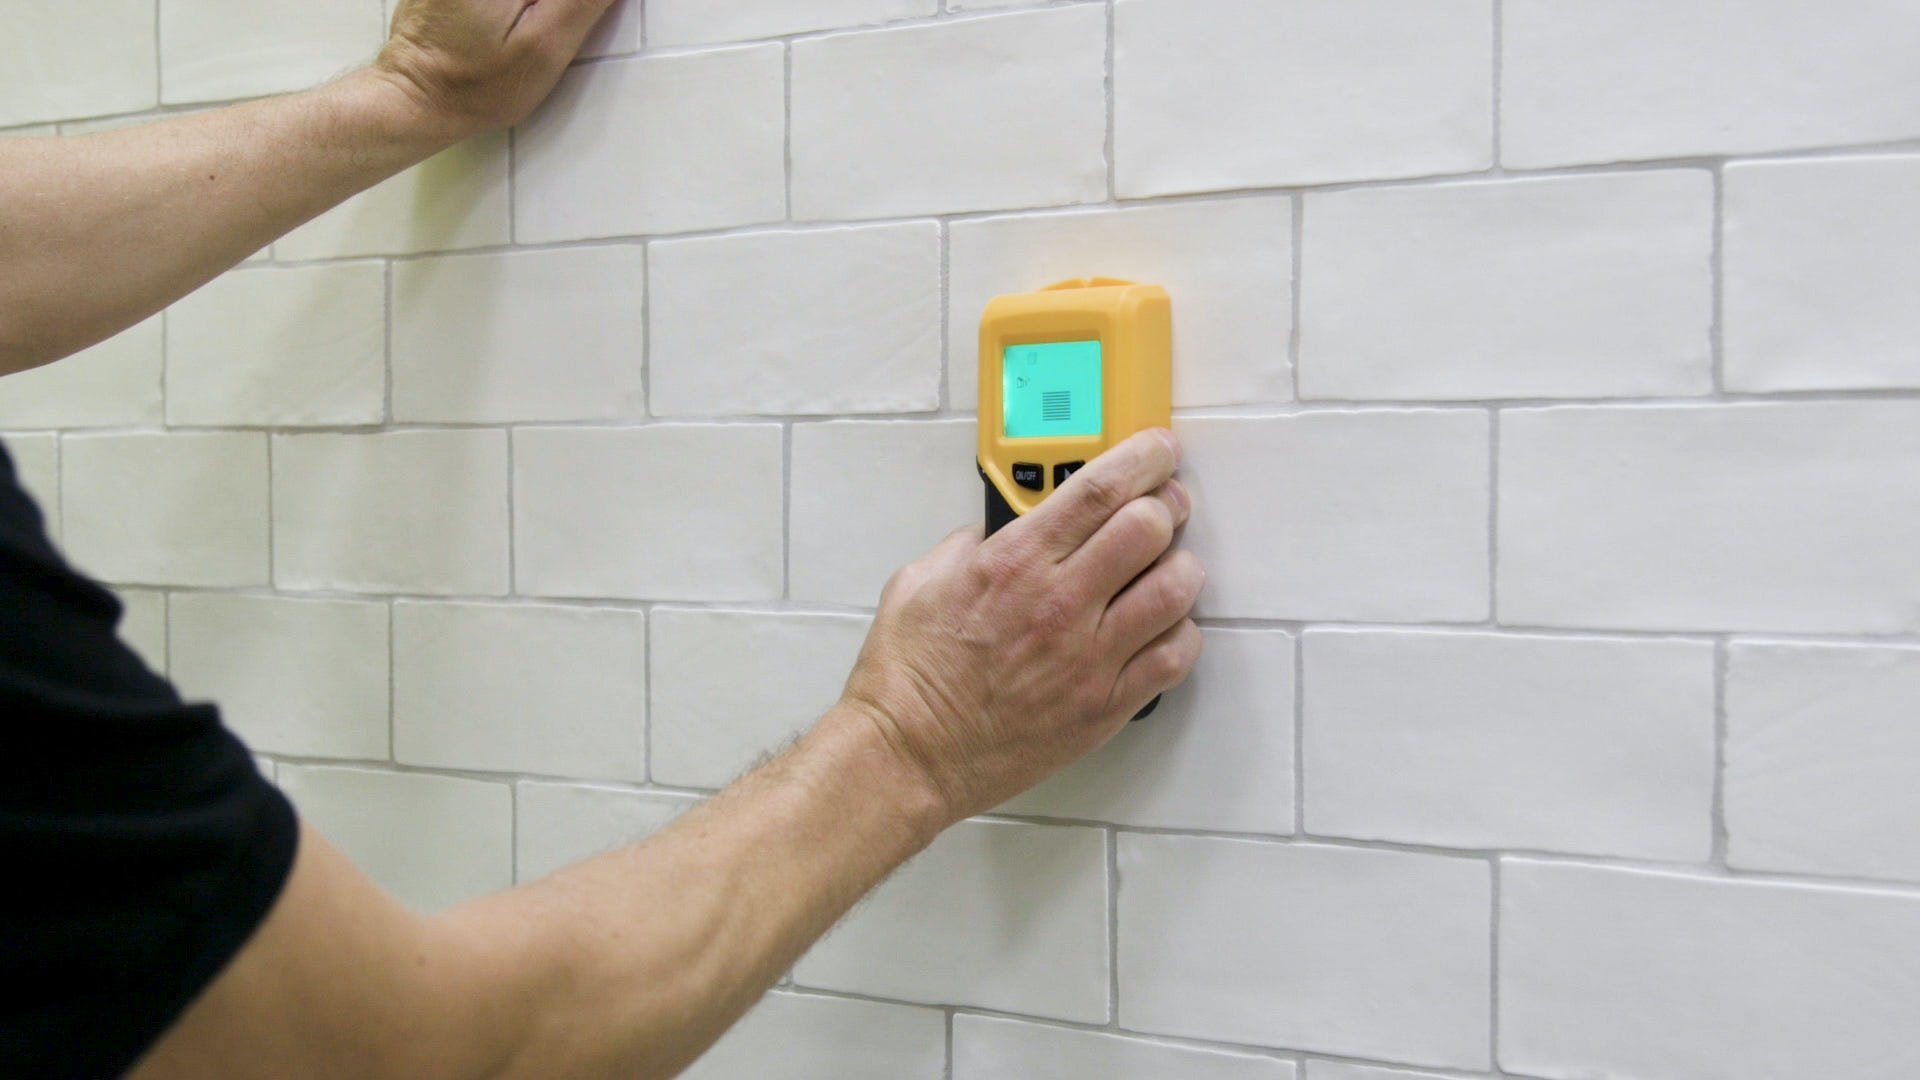 How to drill through tile 1